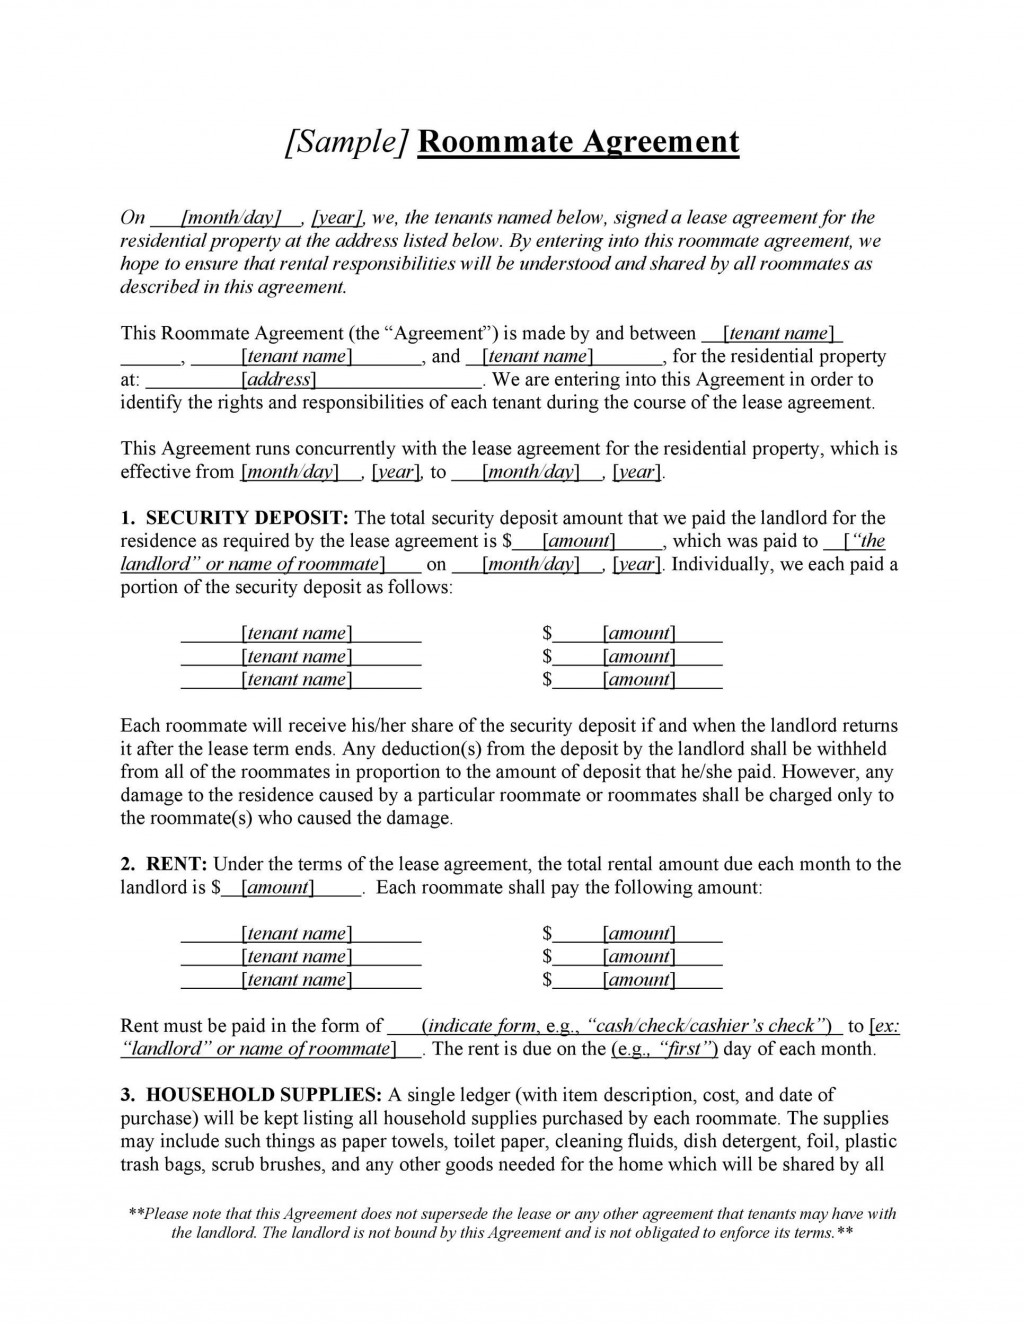 009 Excellent Roommate Rental Agreement Template Image  Form Free ContractLarge